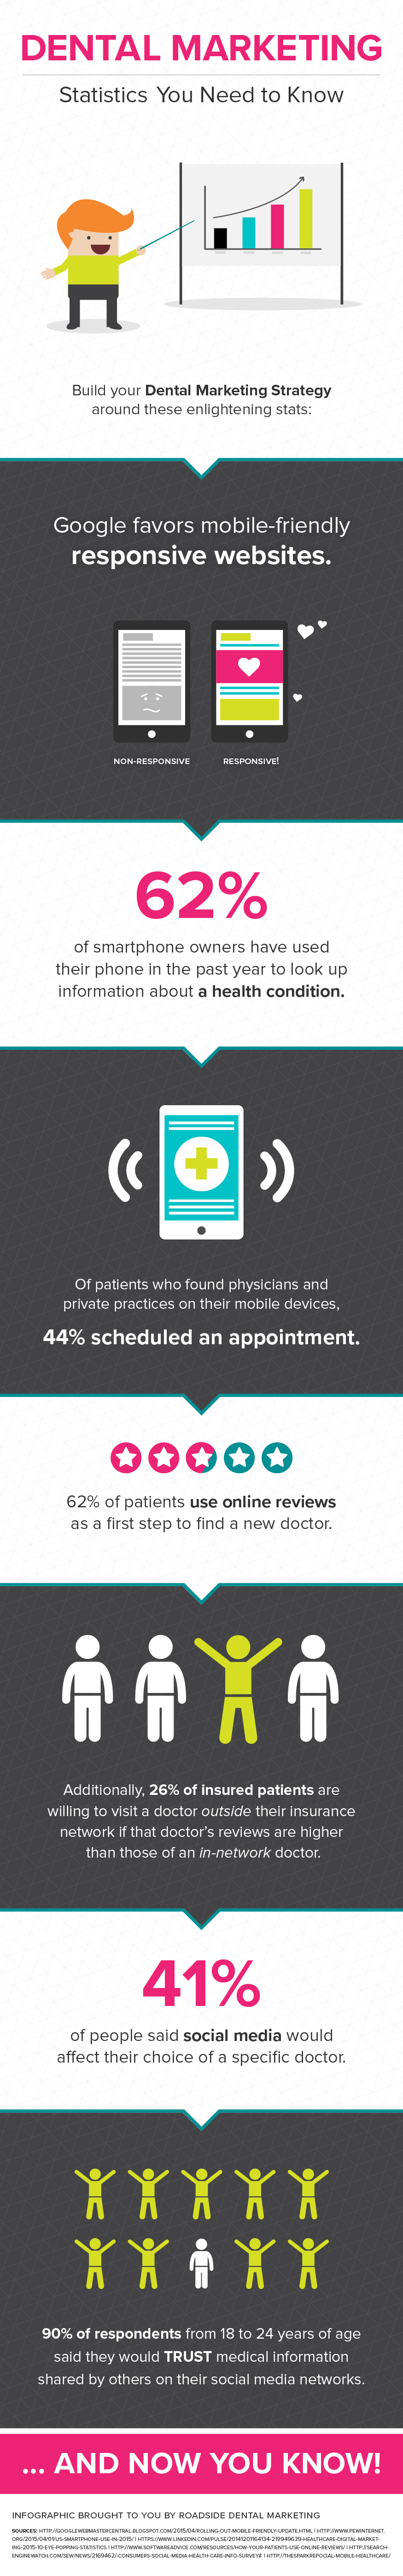 Infographic showing dental marketing statistics